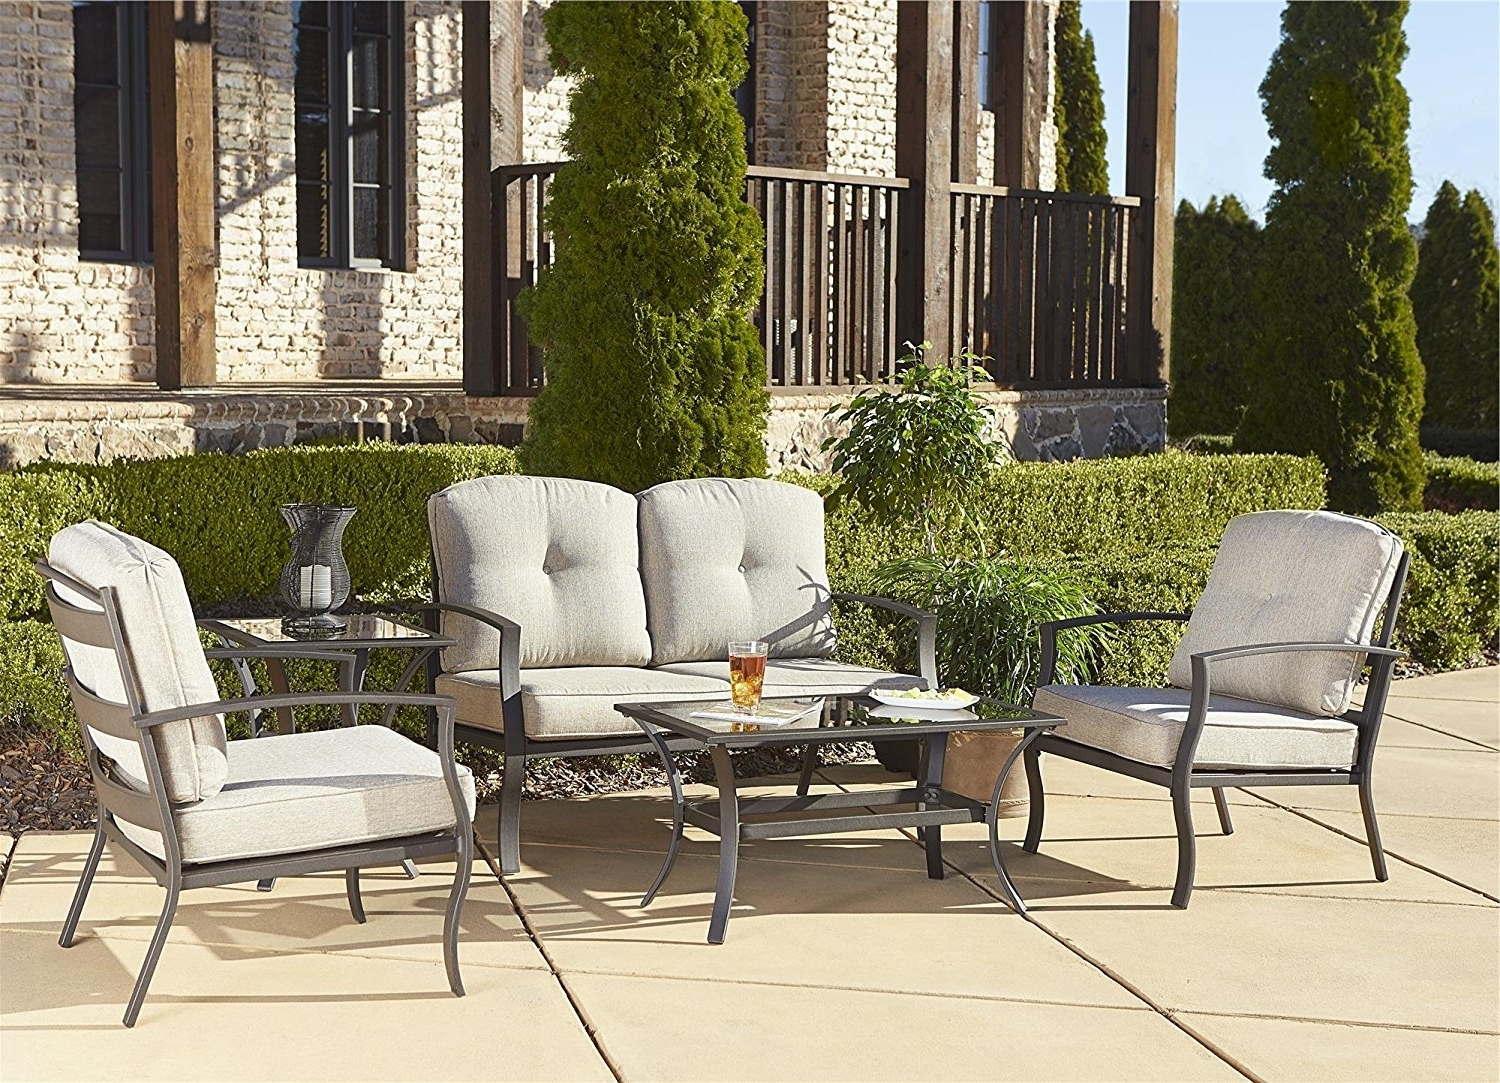 Popular Patio Conversation Sets Under $500 With Regard To Big Lots Patio Furniture Target Patio Furniture Gas Fire Pit Chat (View 15 of 20)